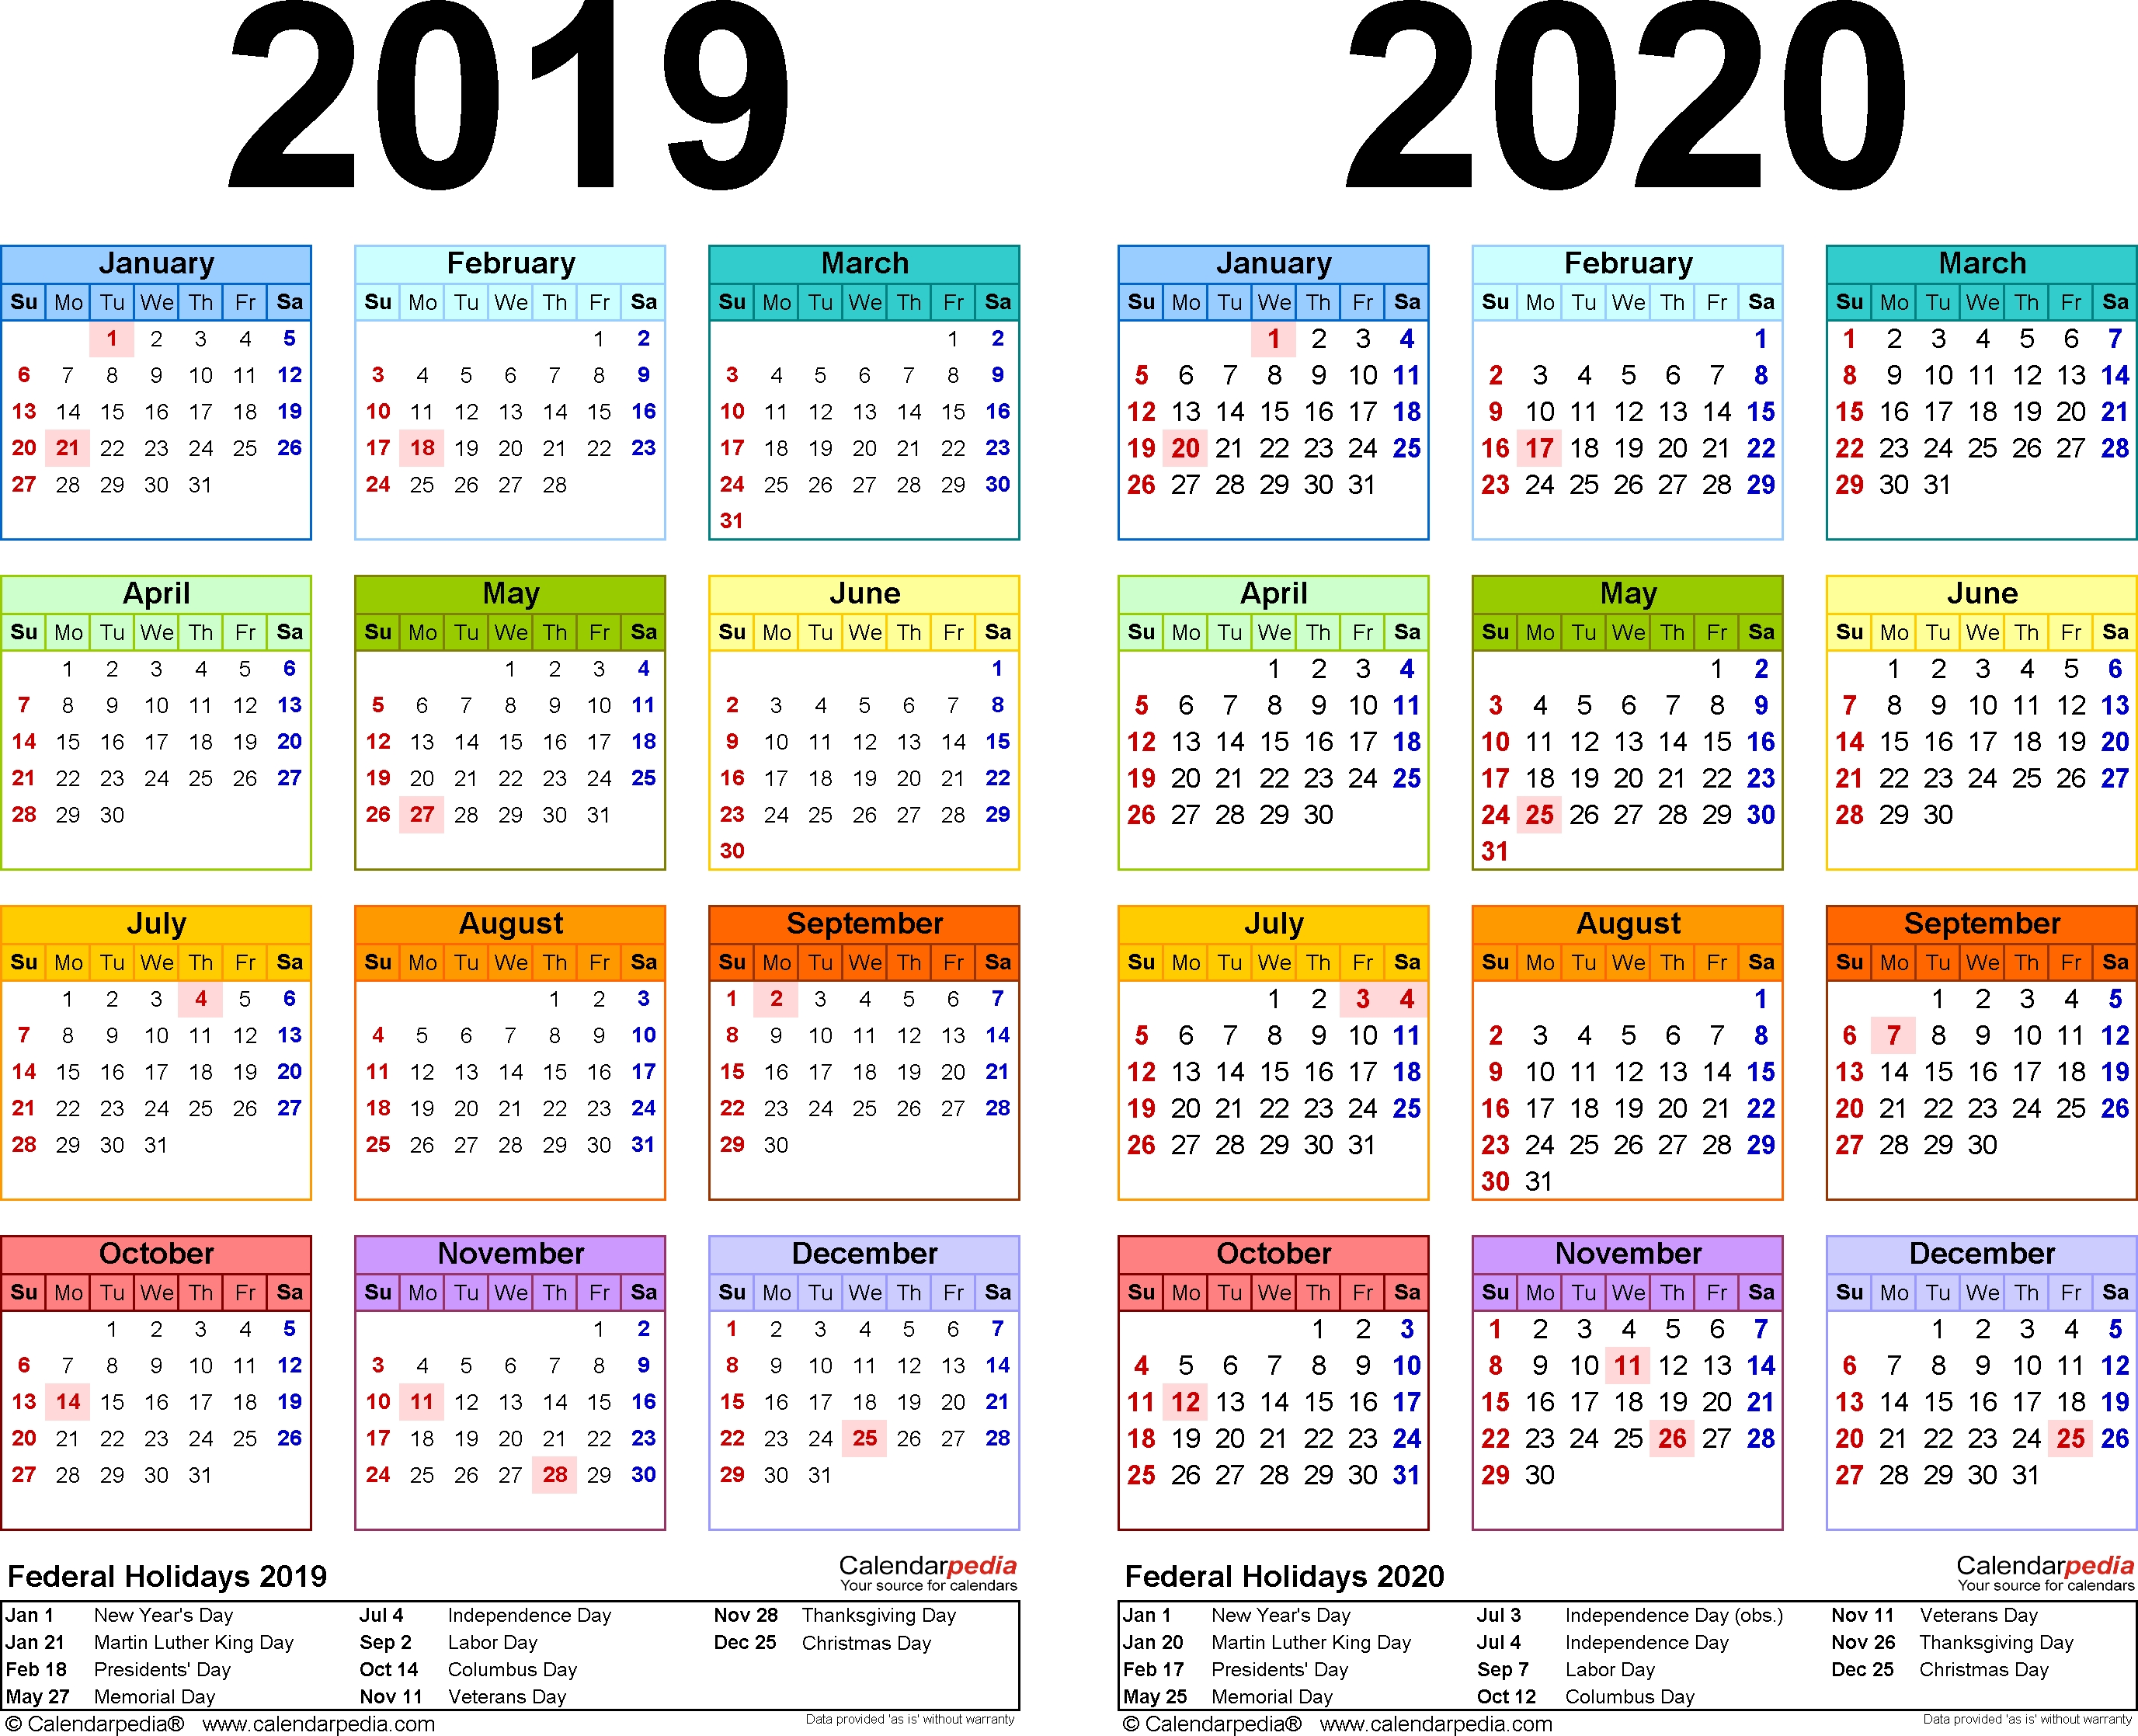 2019-2020 Calendar - Free Printable Two-Year Pdf Calendars pertaining to 2019 2020 Box Calender